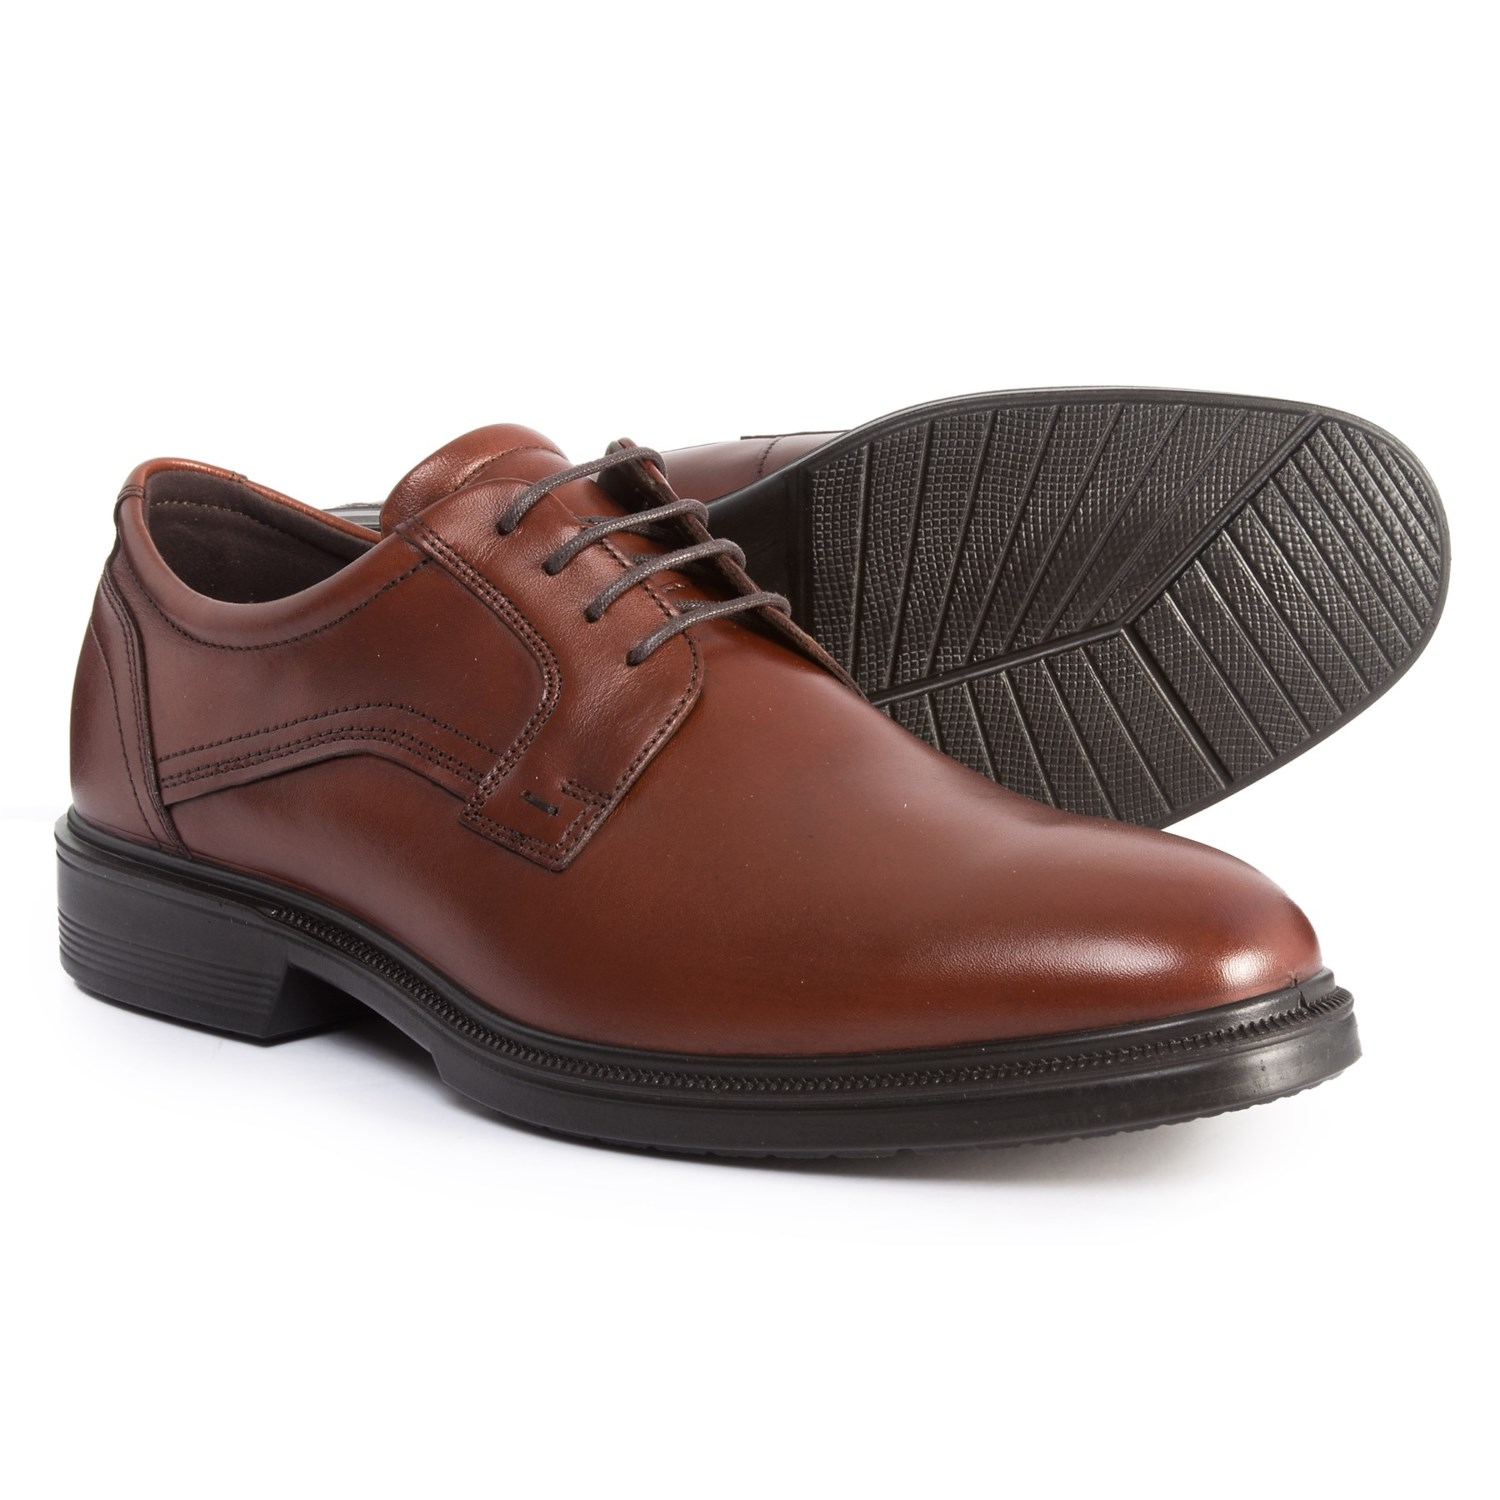 ECCO Lisbon Oxford Shoes - Leather (For Men) in Cognac 1757bceddb